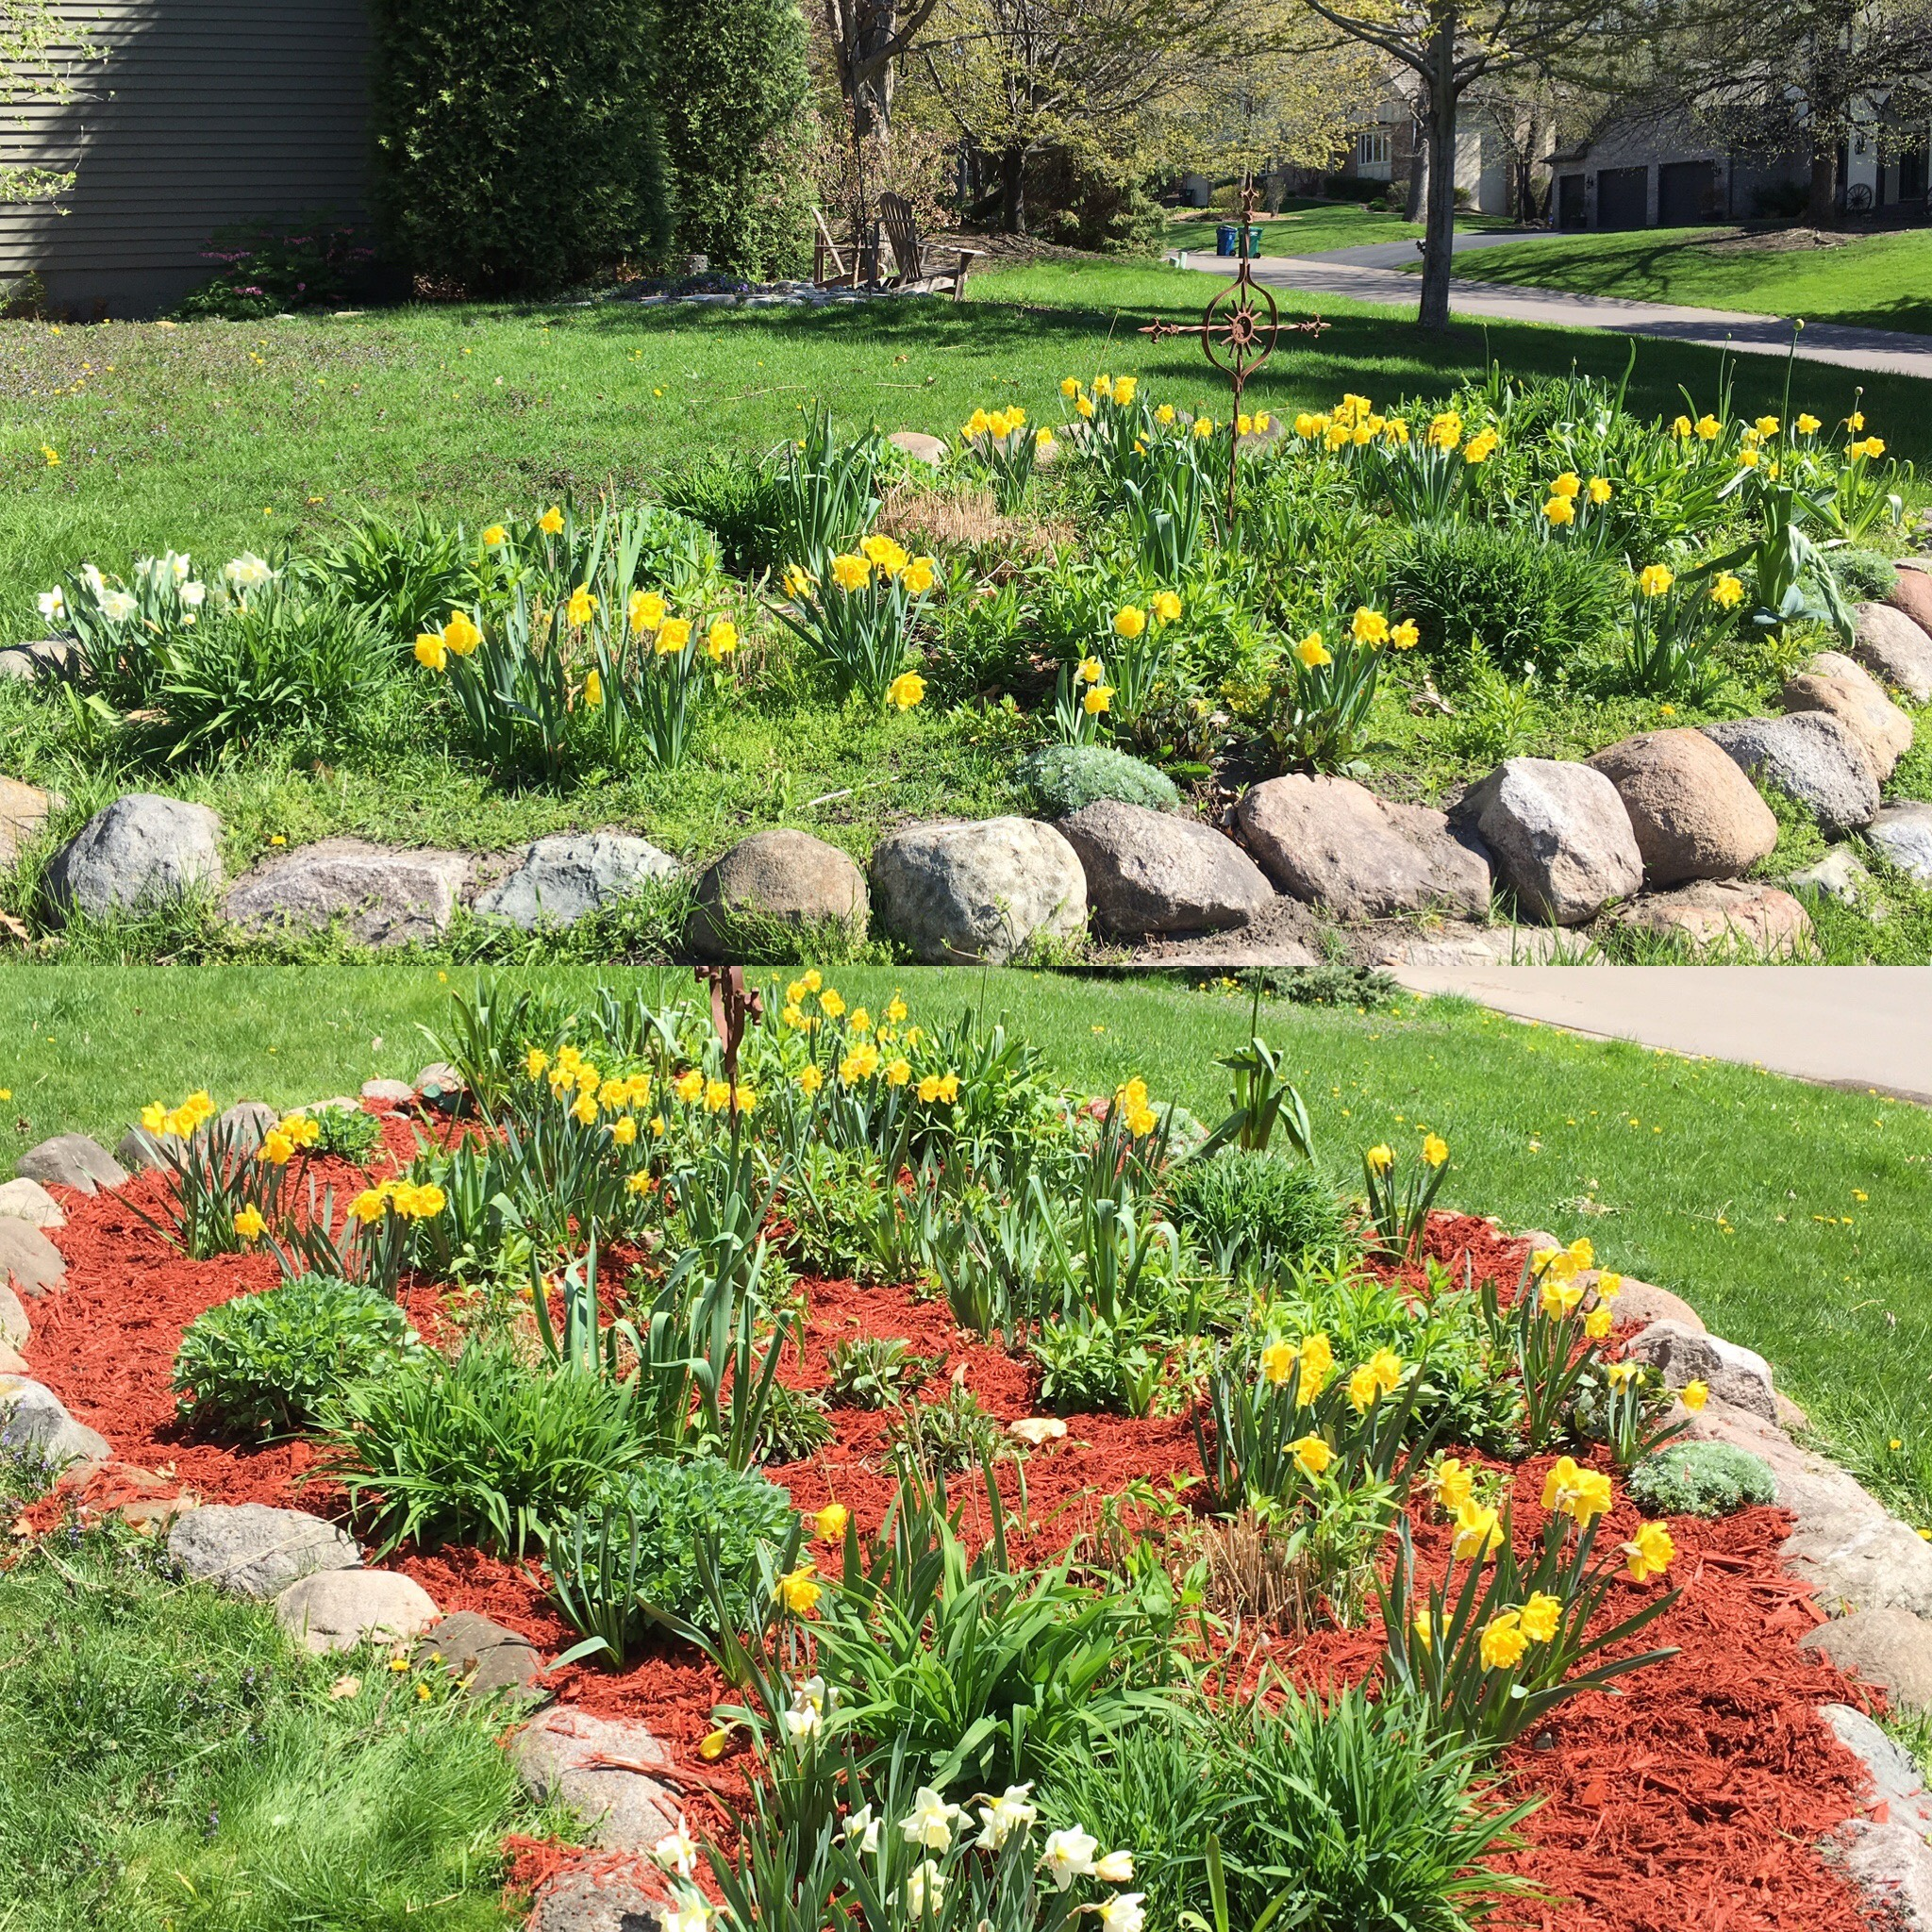 Weeding & mulch and looks great!